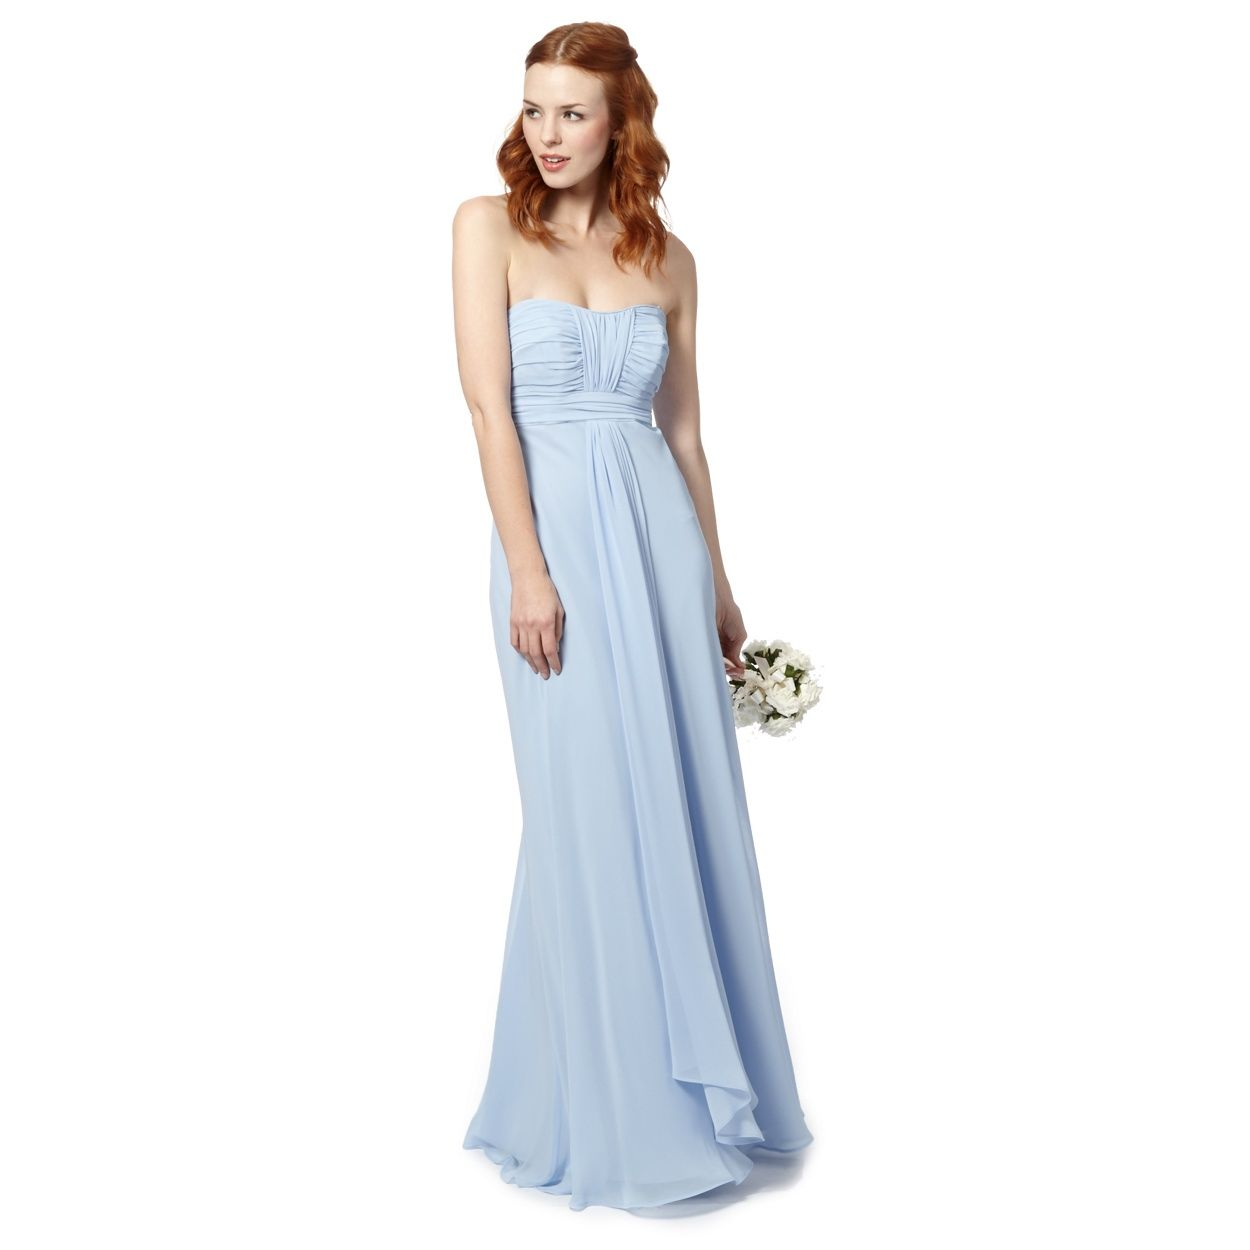 Debut light blue ruched bodice maxi dress at debenhams debut light blue ruched bodice maxi dress at debenhams ombrellifo Images